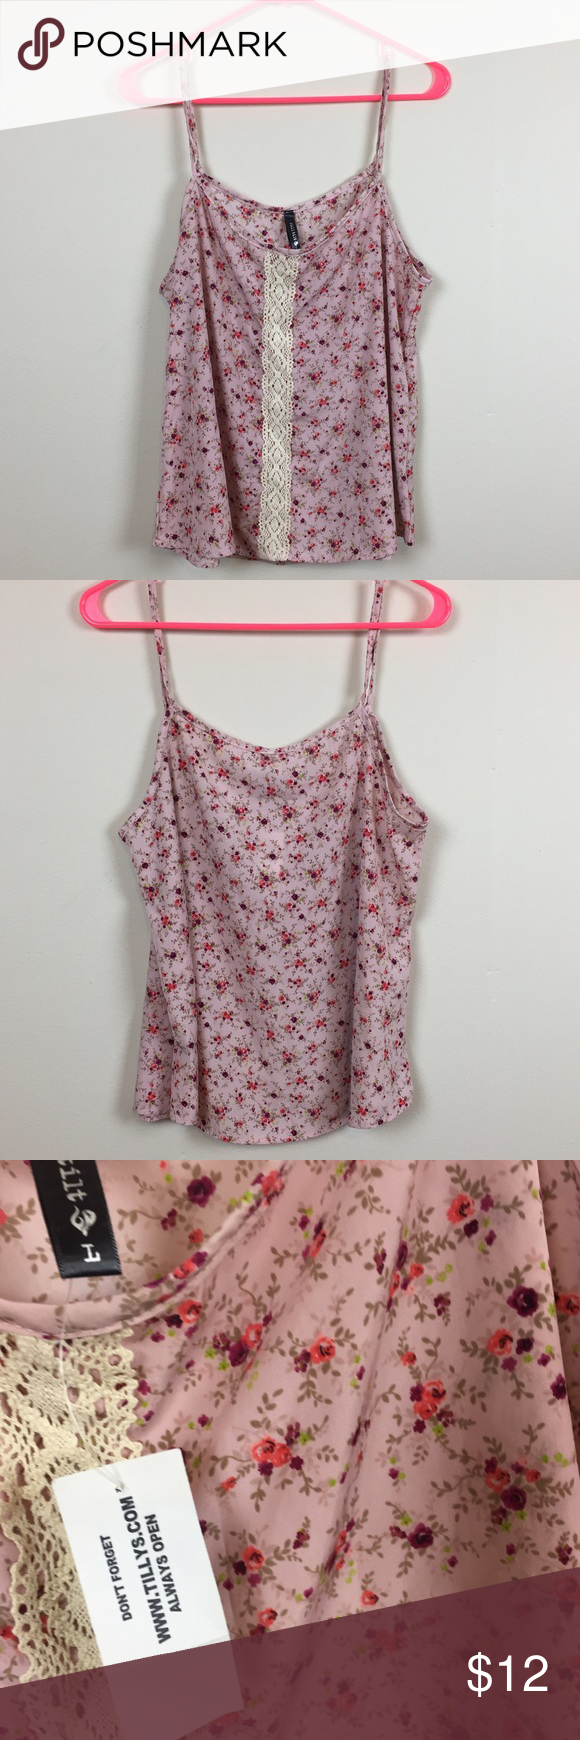 Full Tilt Floral Top Pretty pink and purple tank top with lace down the middle in the front. NWT. any questions please let me know Full Tilt Tops Tank Tops